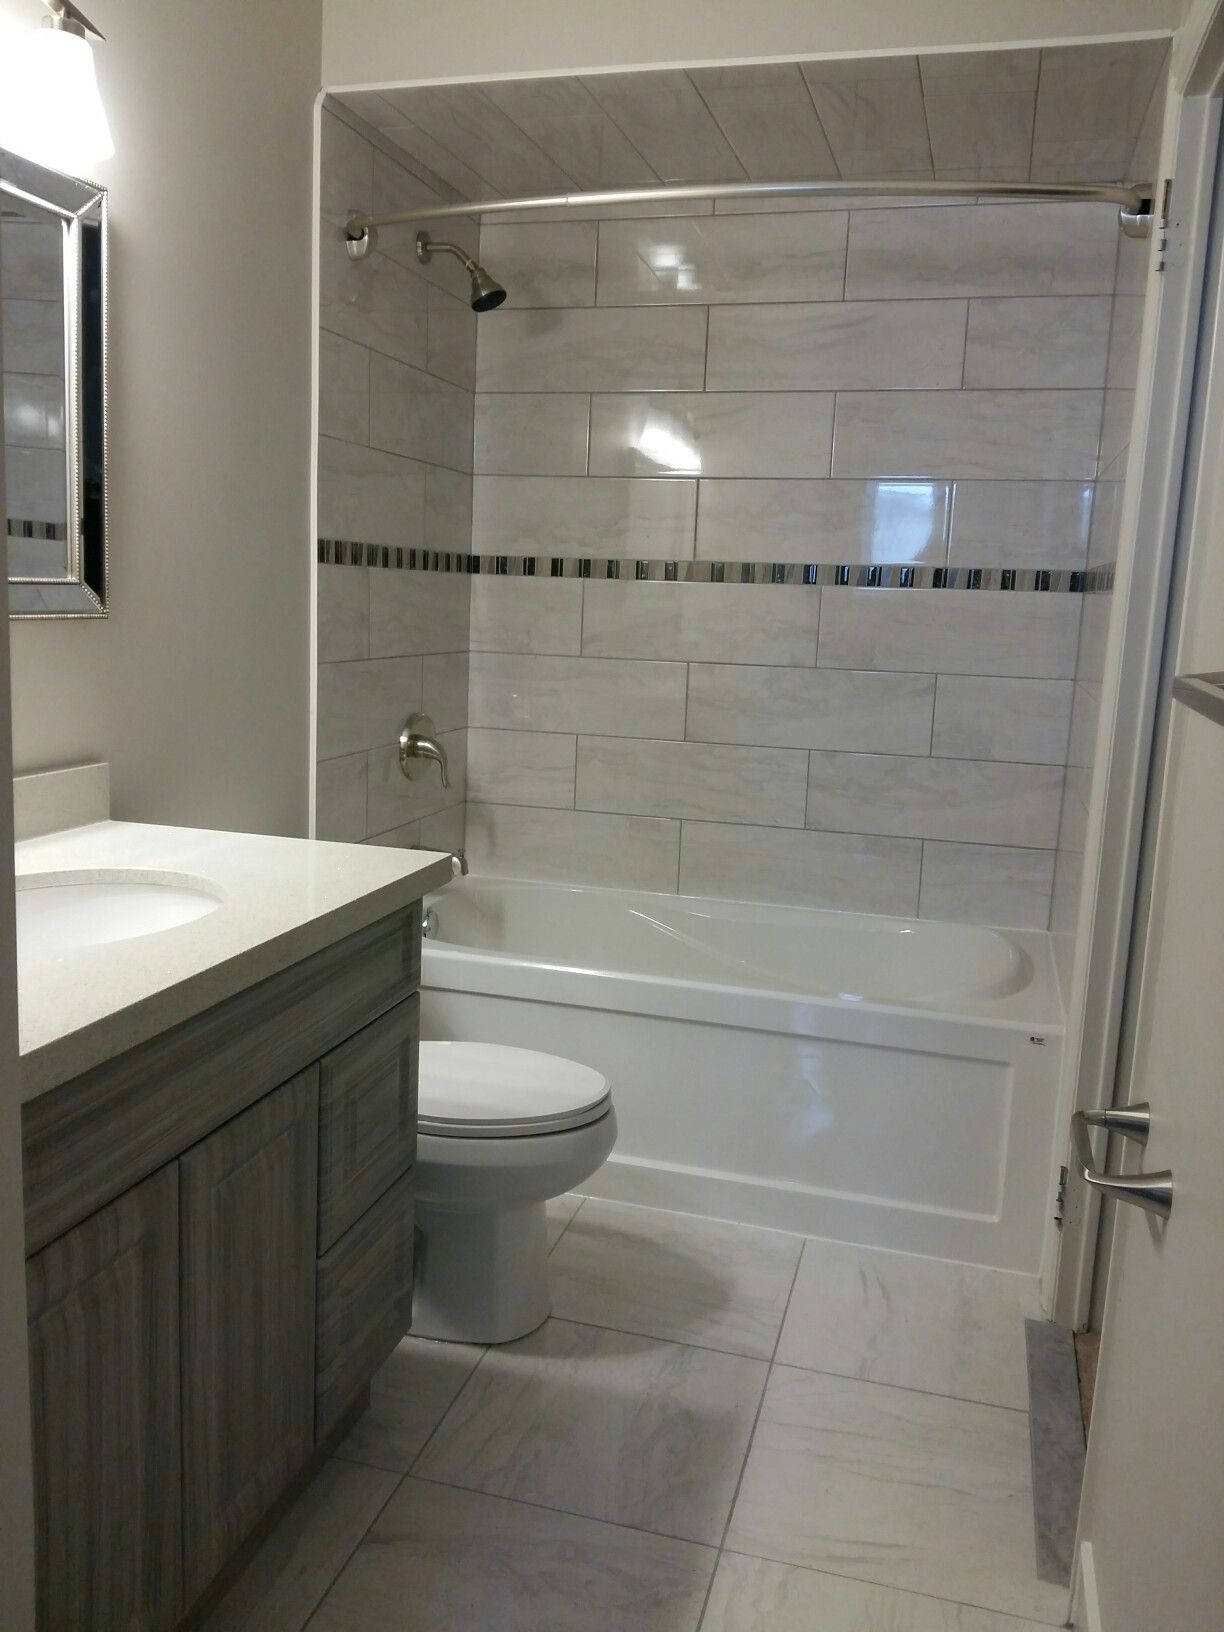 Bathroom Renovation By Central Home Improvements Bathroom - Home improvement bathroom remodel